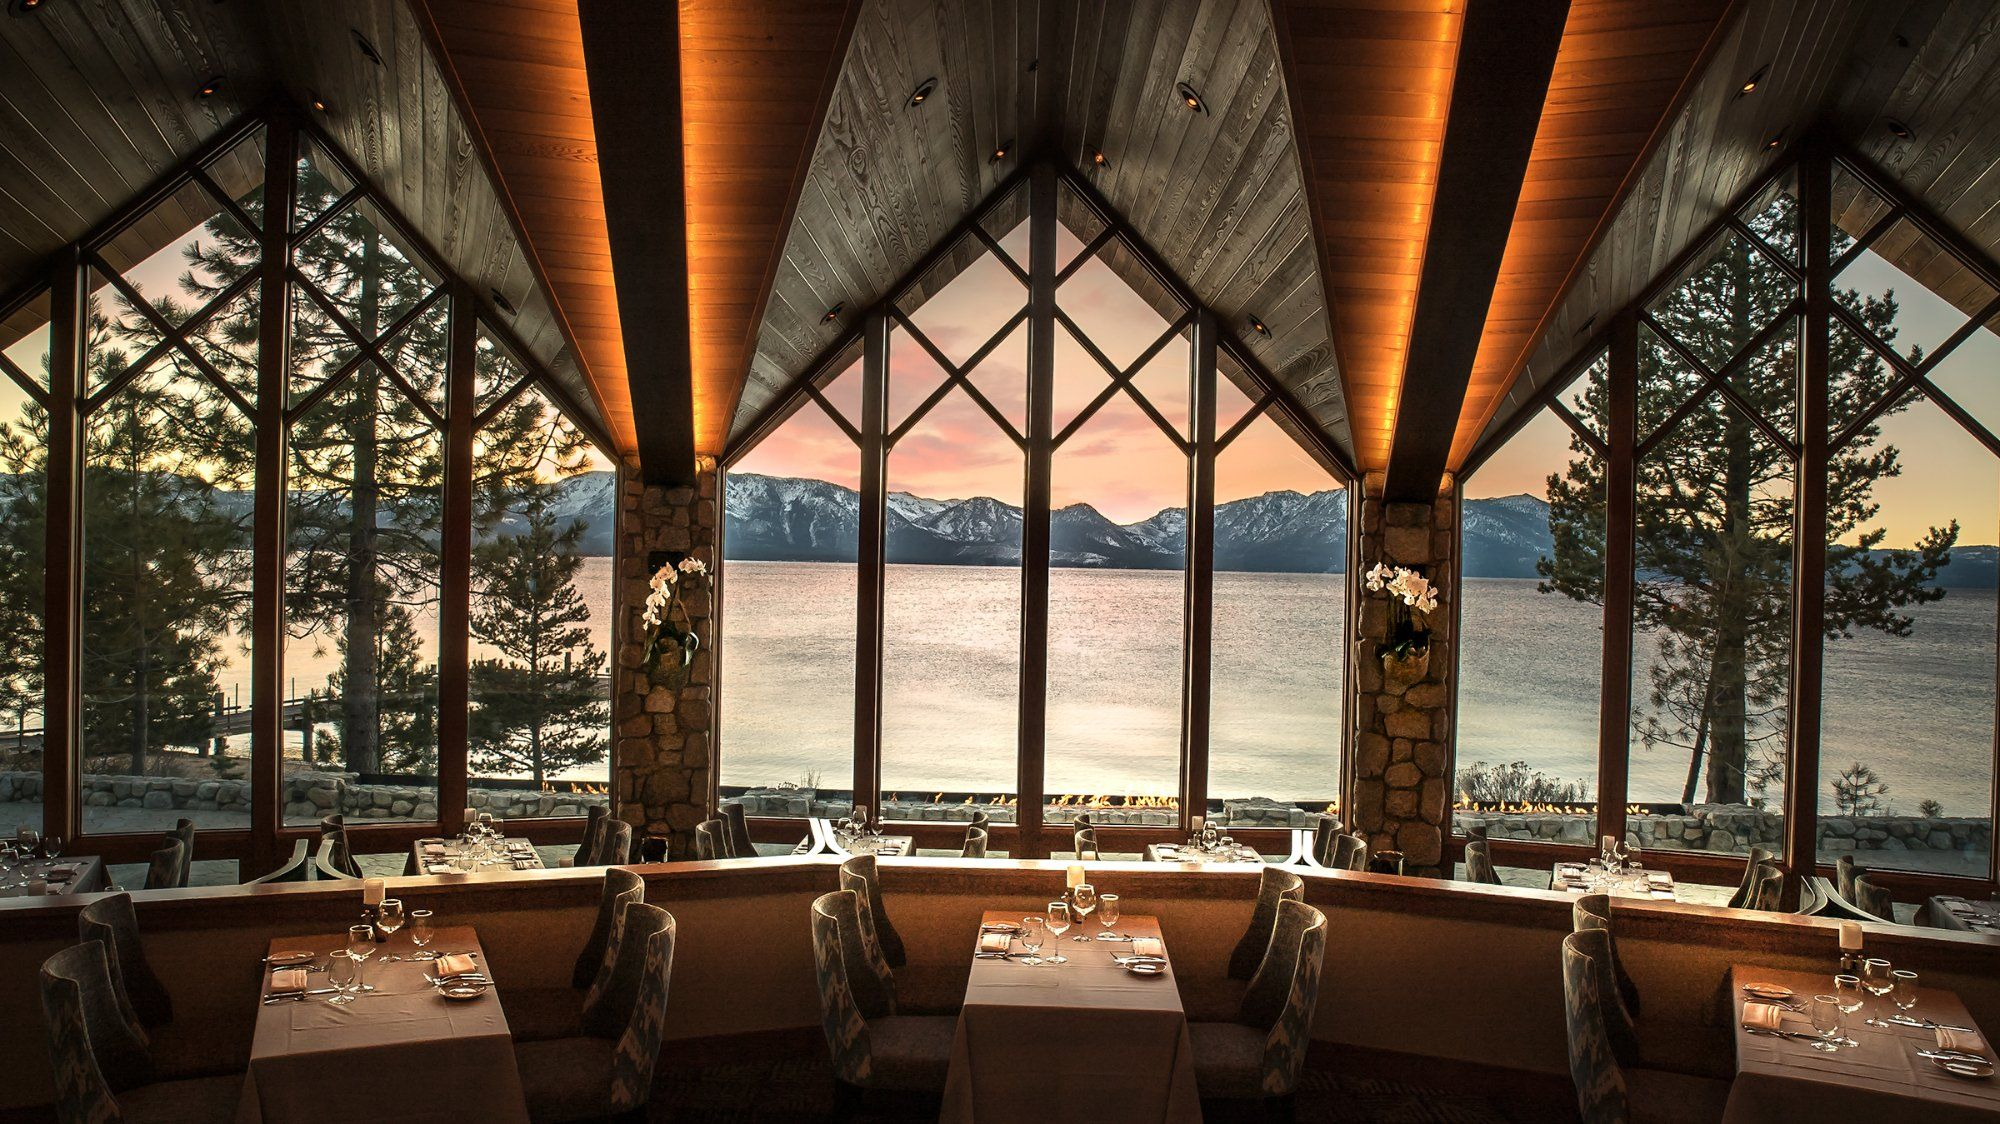 Edgewood Restaurant, Lake Tahoe (Nevada) Restaurant